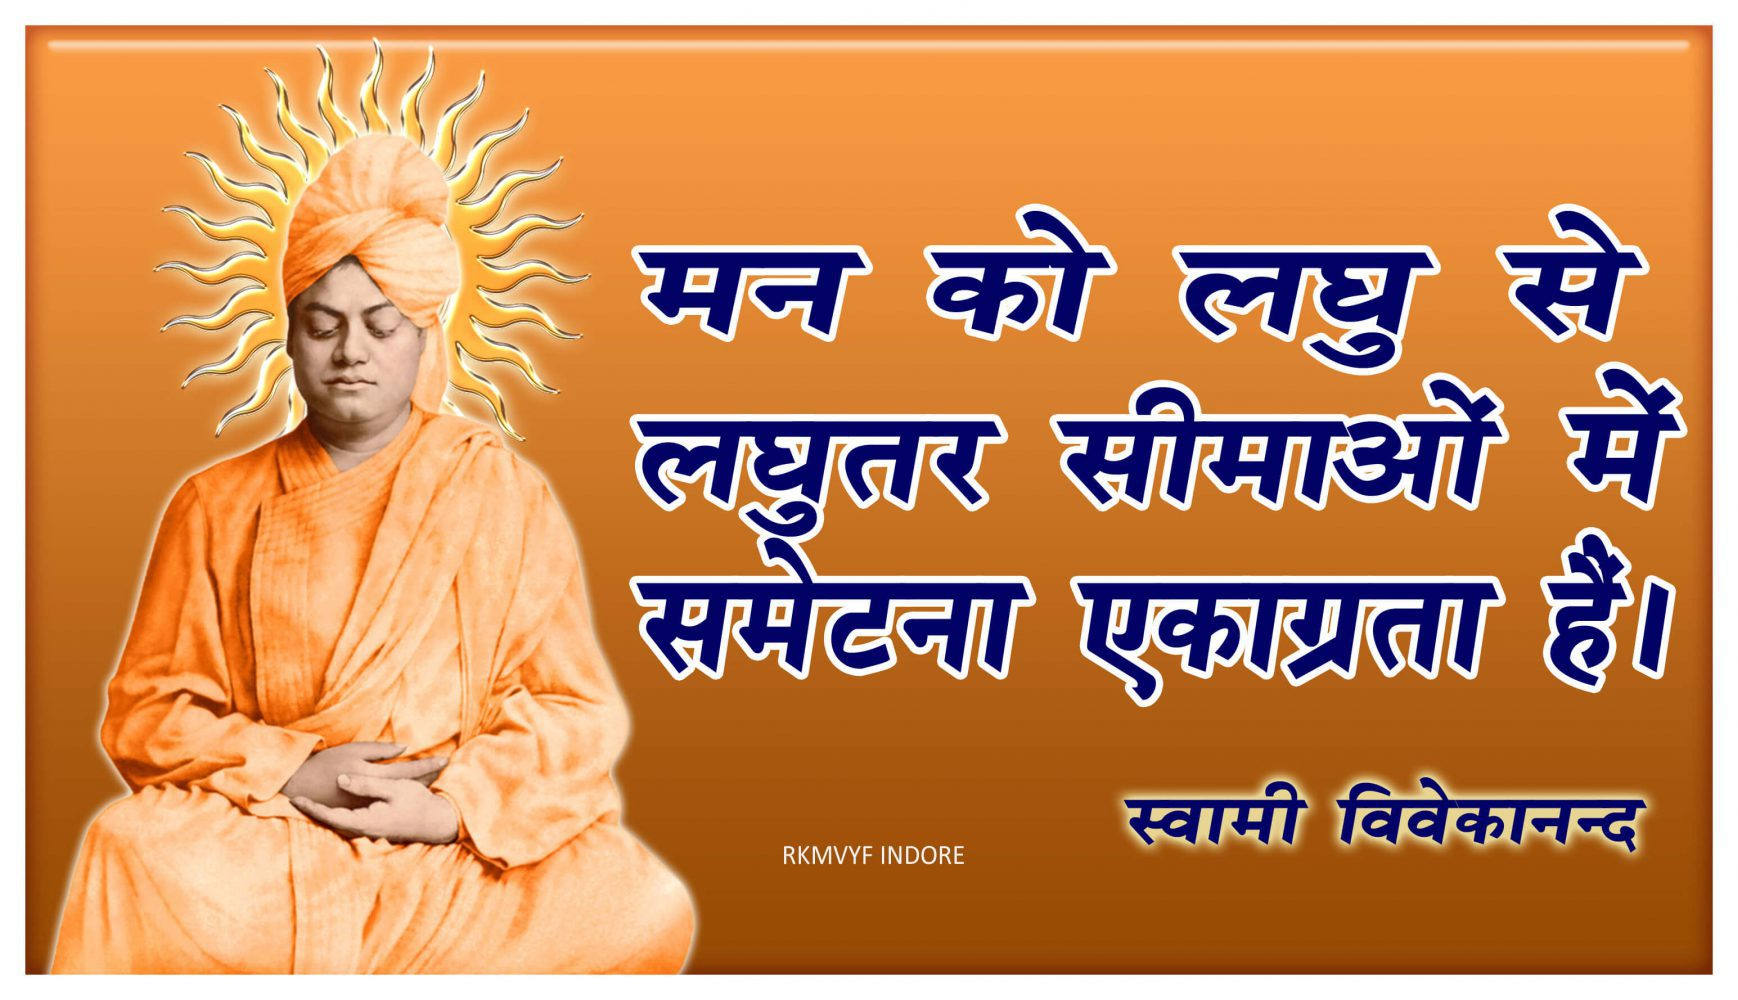 Inspirational Quote of Swami Vivekananda